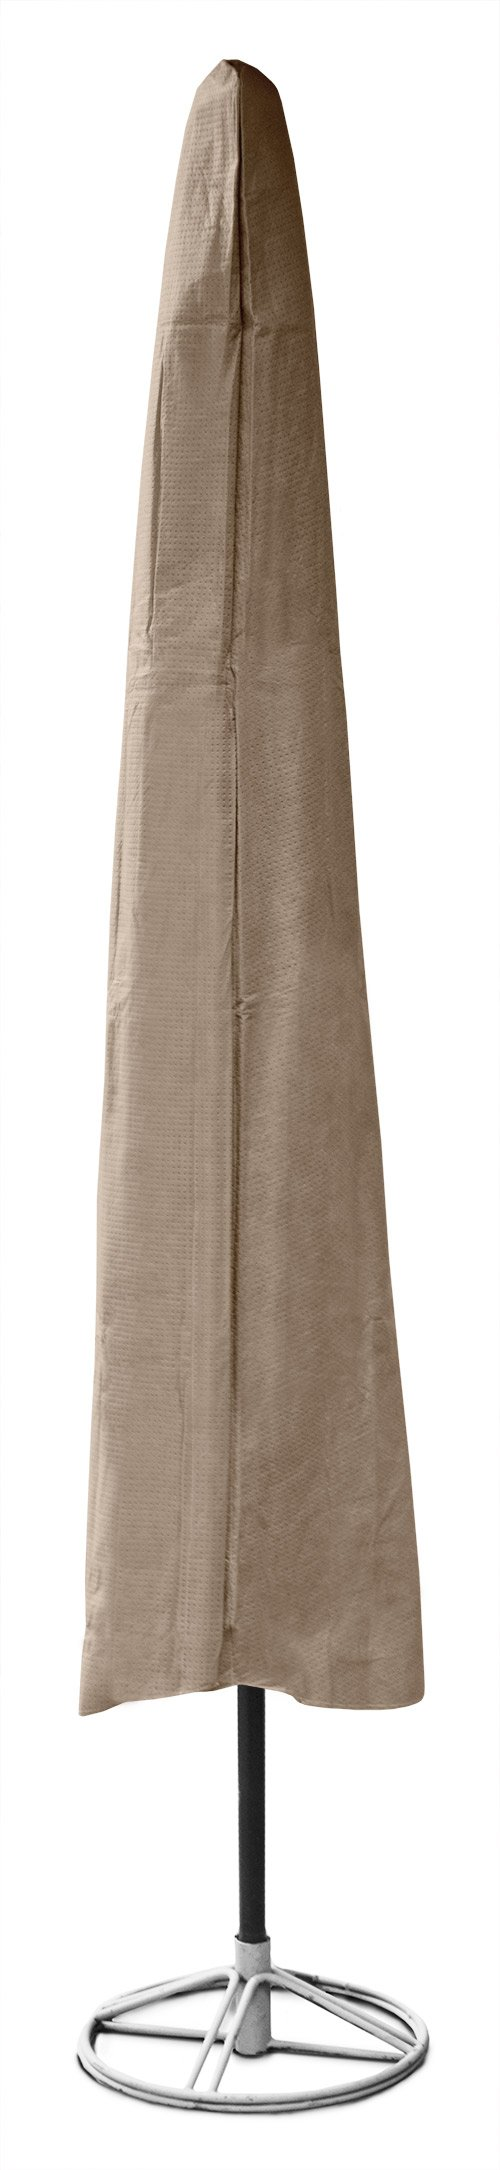 KoverRoos III 34150 7-Feet to 9-Feet Umbrella Cover, 76-Inch Height by 48-Inch Circumference, Taupe by KOVERROOS